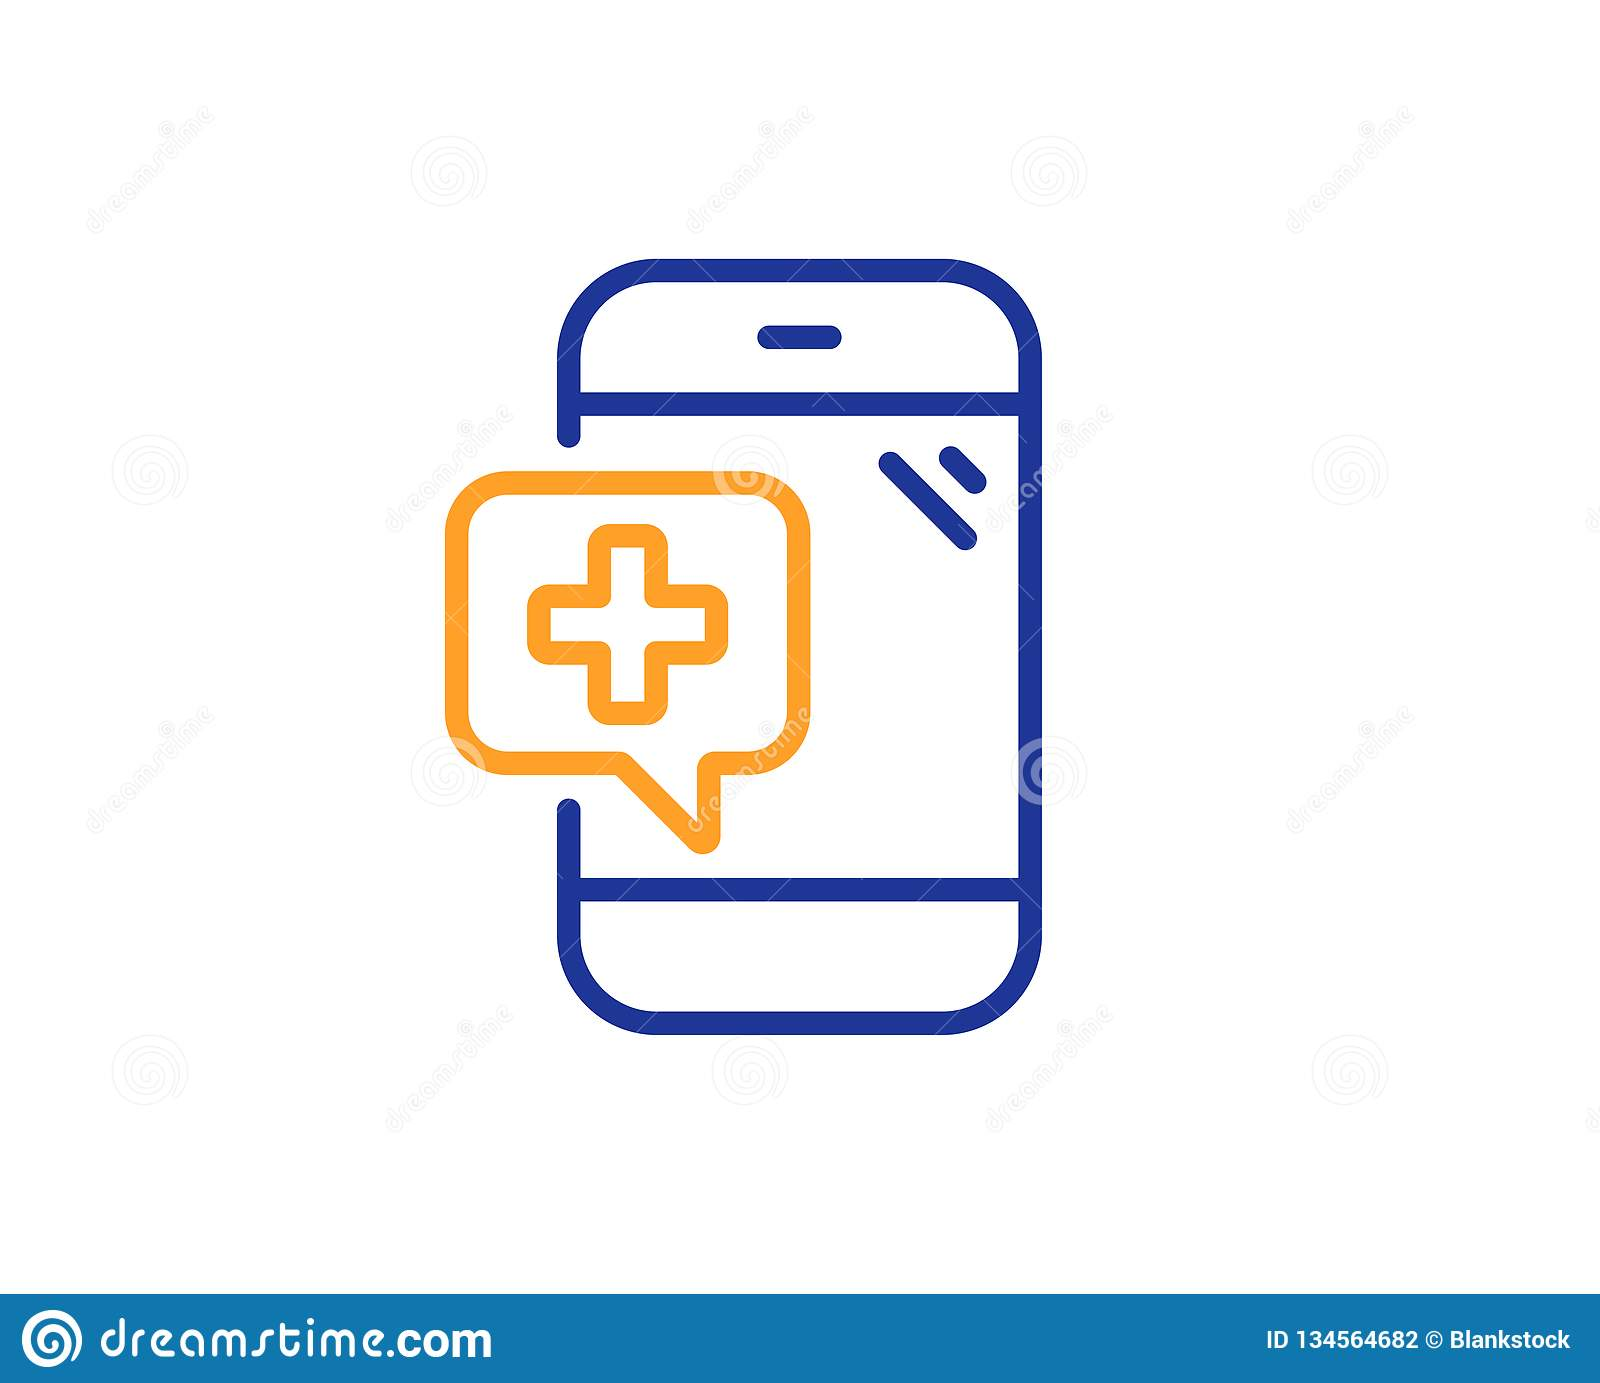 hight resolution of medicine phone line icon mobile medical help sign colorful outline concept blue and orange thin line color medical phone icon vector